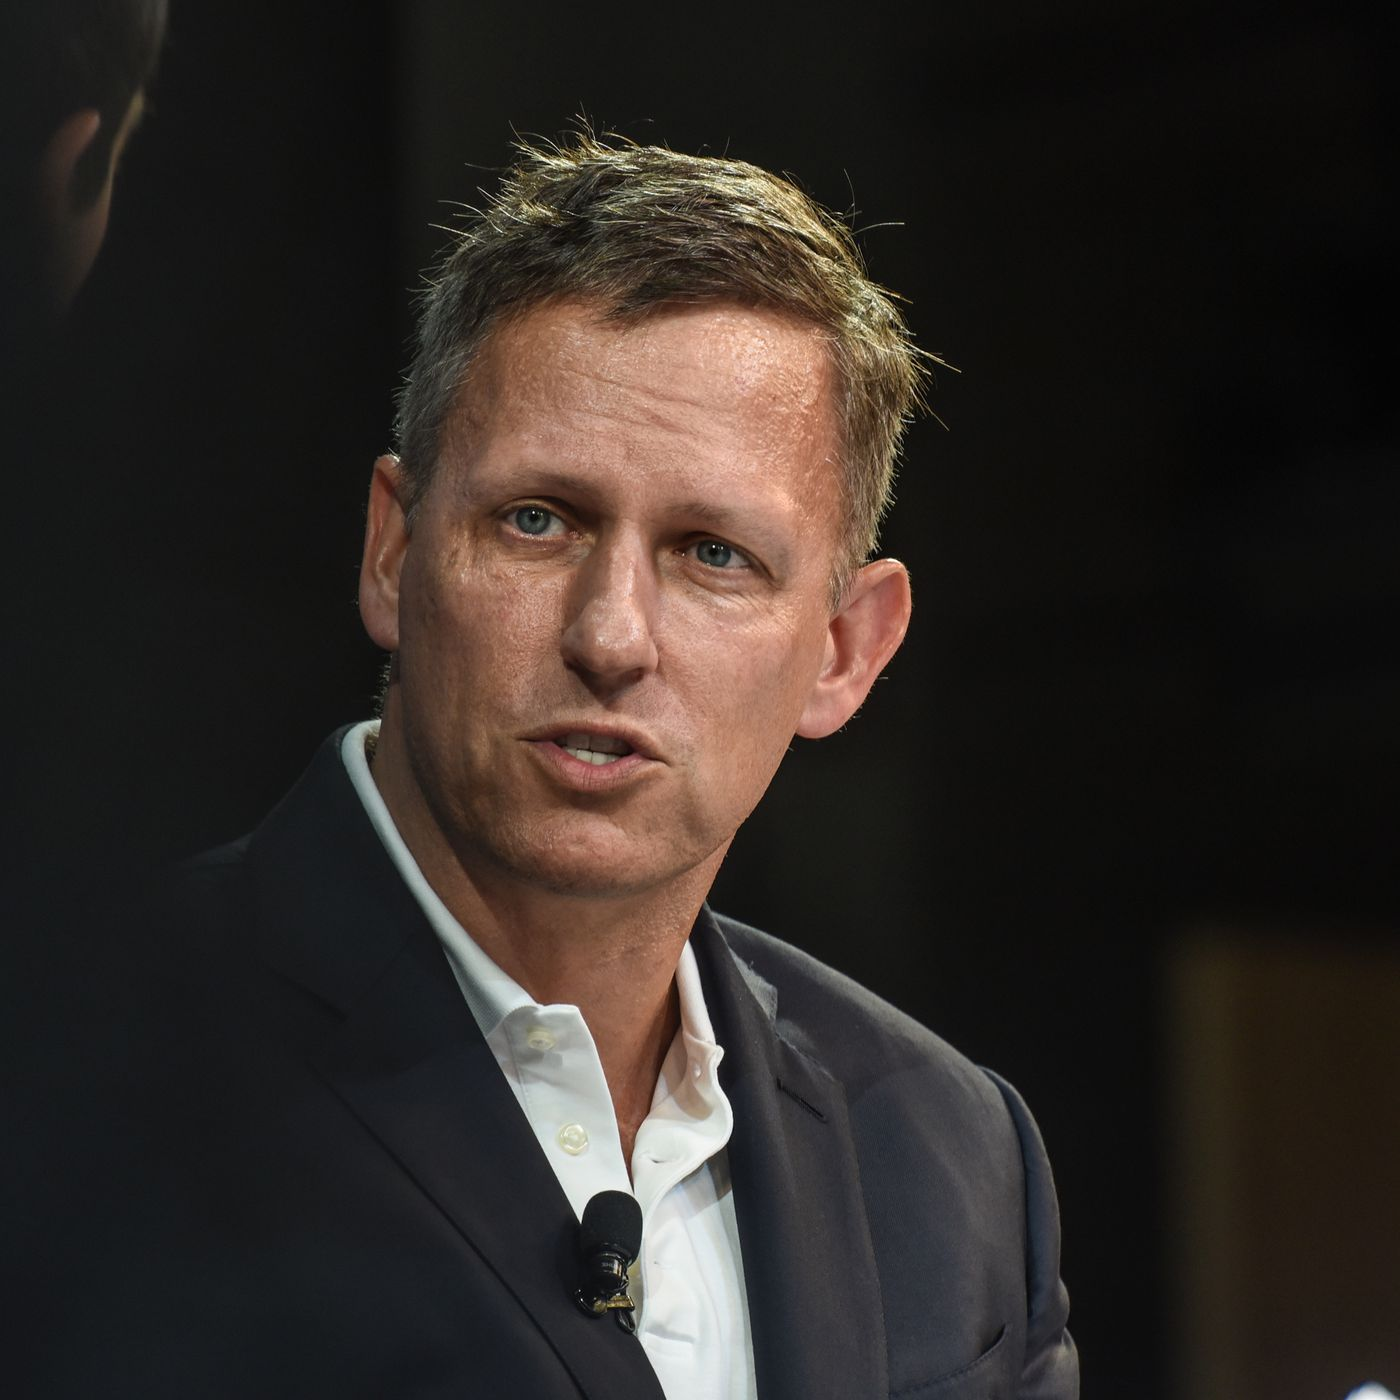 Peter Thiel: Inside the drama at one of his venture capital firms - Vox